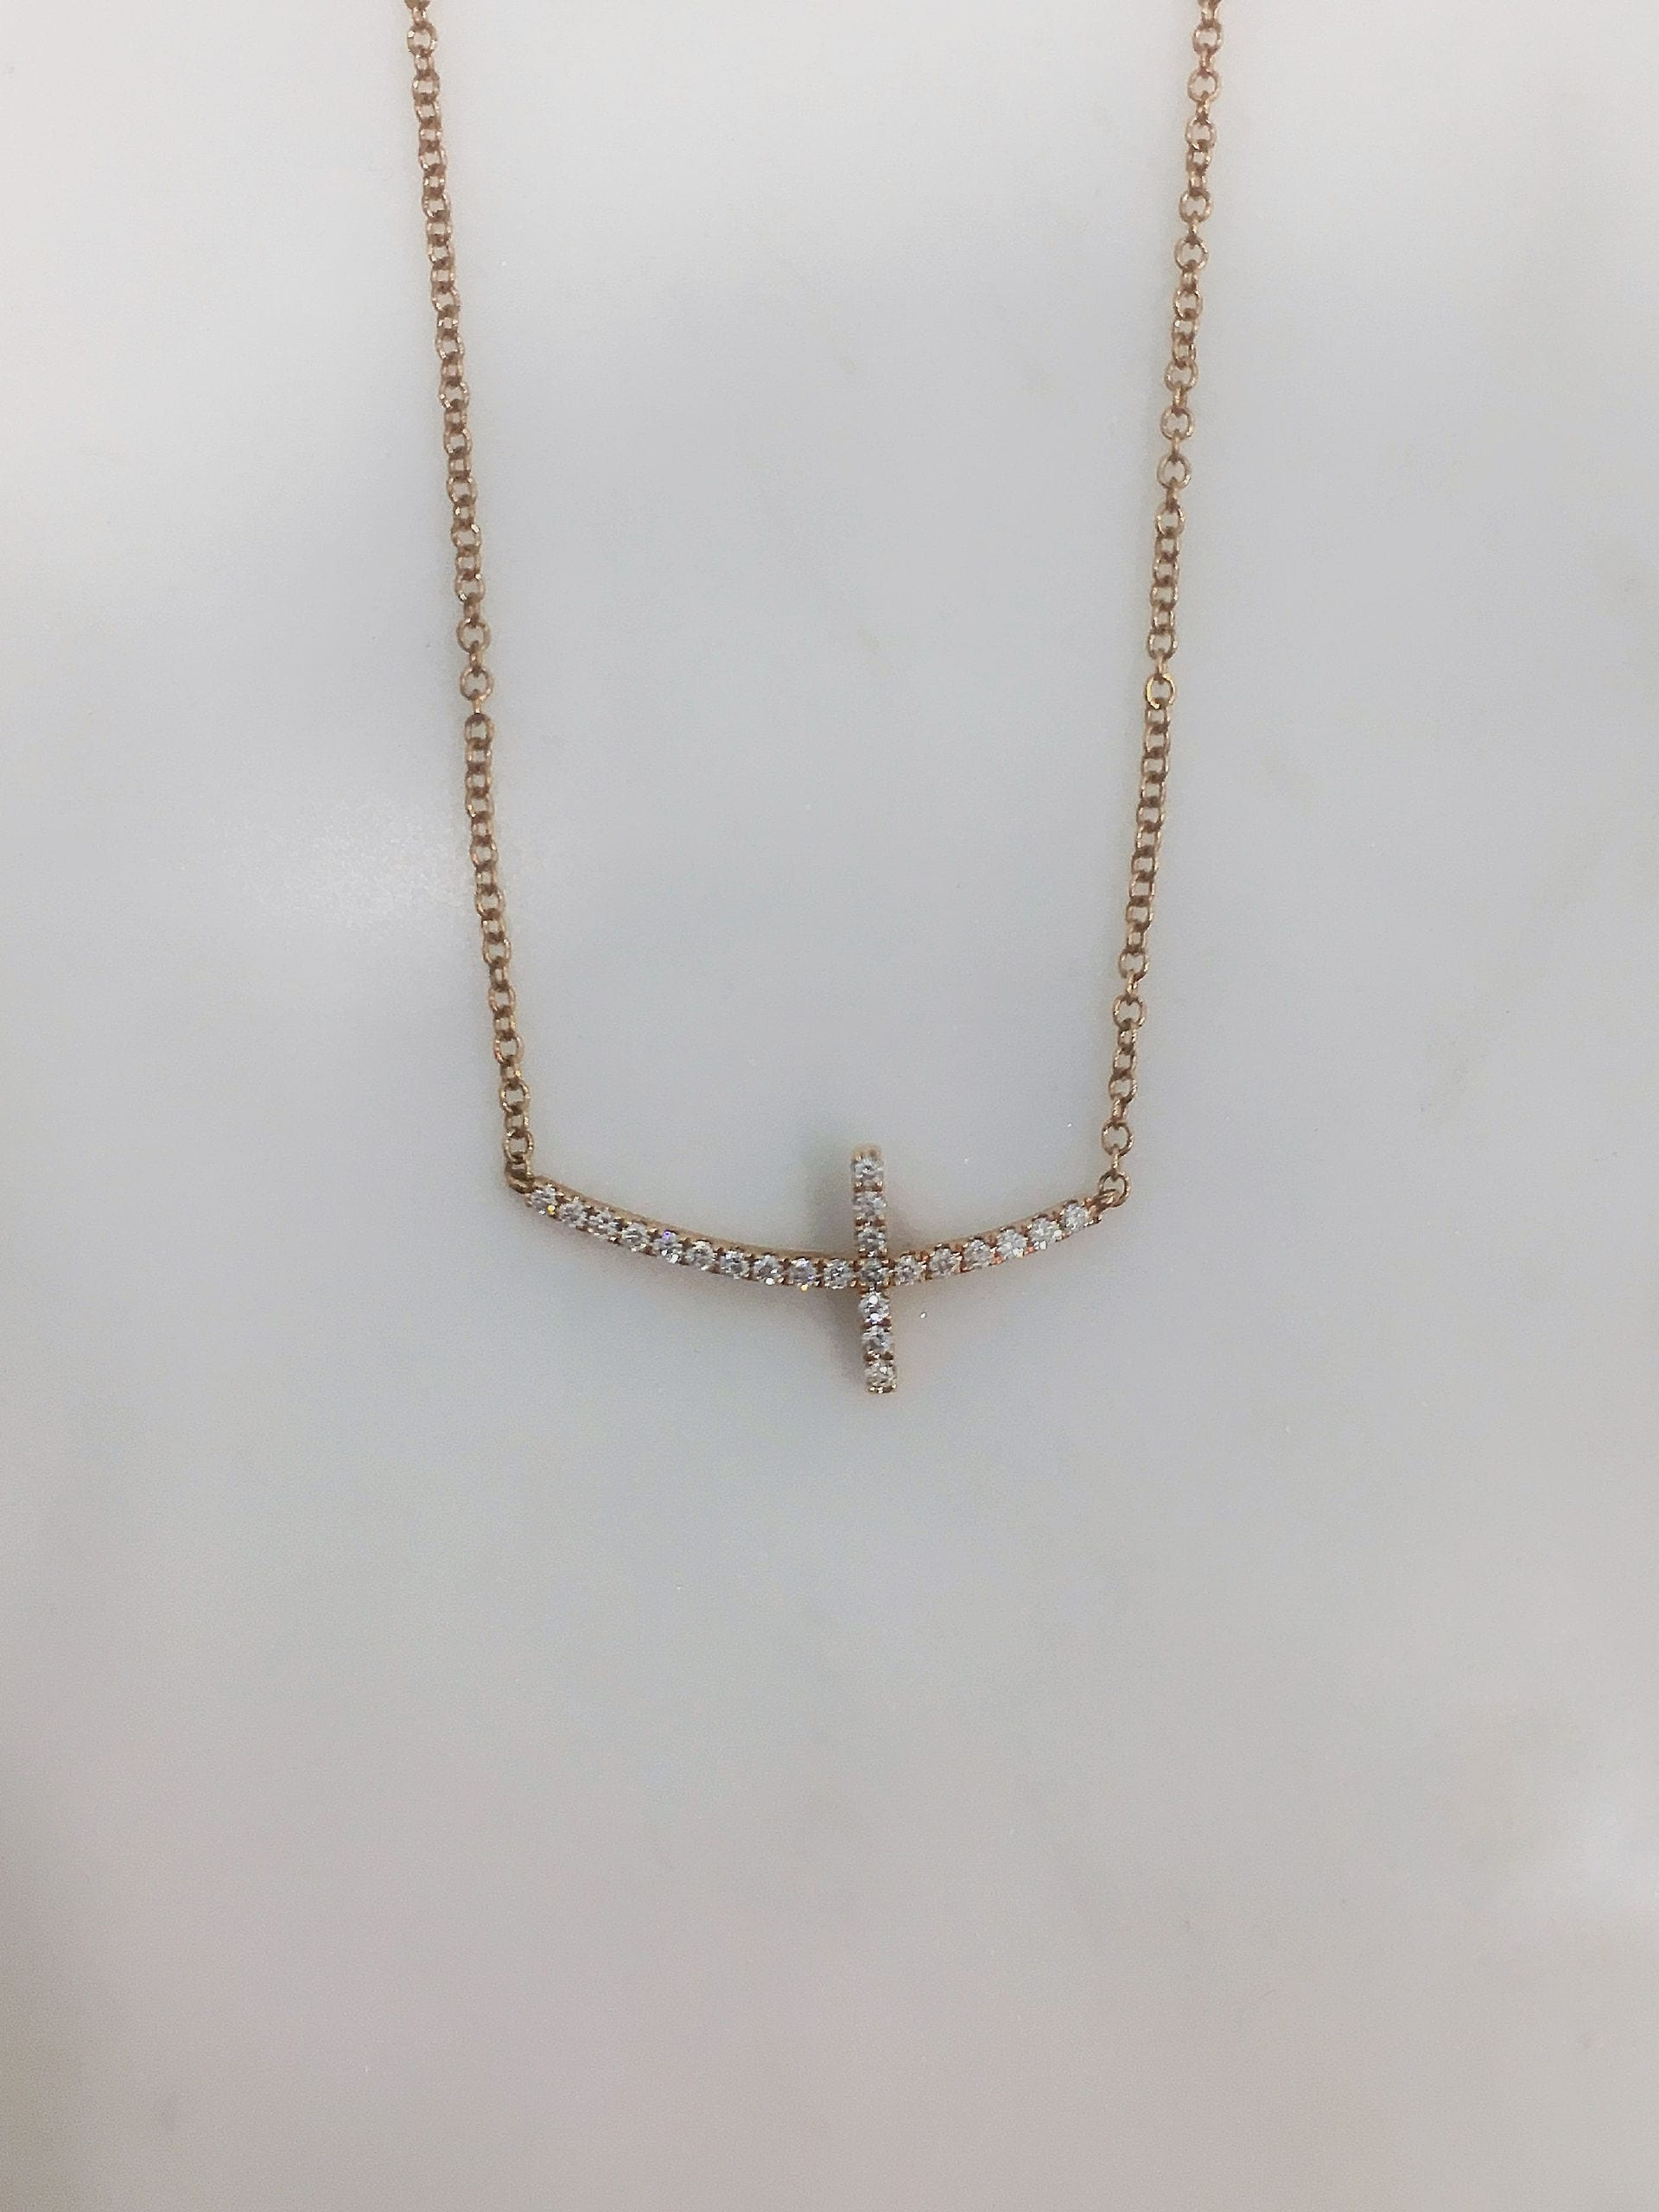 silver christian products necklace sideways ssc free positive shipping the cross